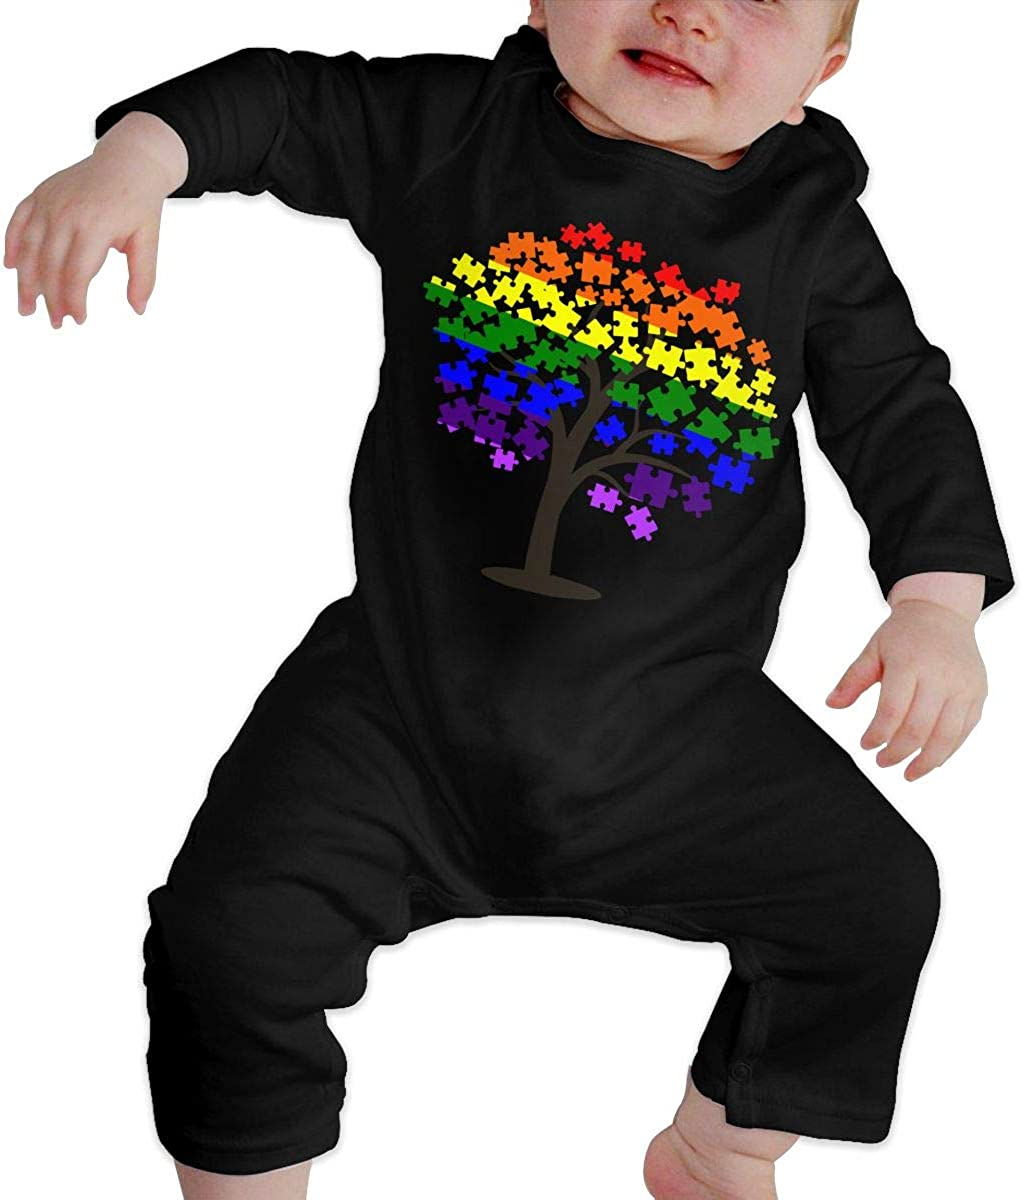 Autism Awareness LGBT Flag Tree Baby Boy Bodysuits One Piece Baby Rompers